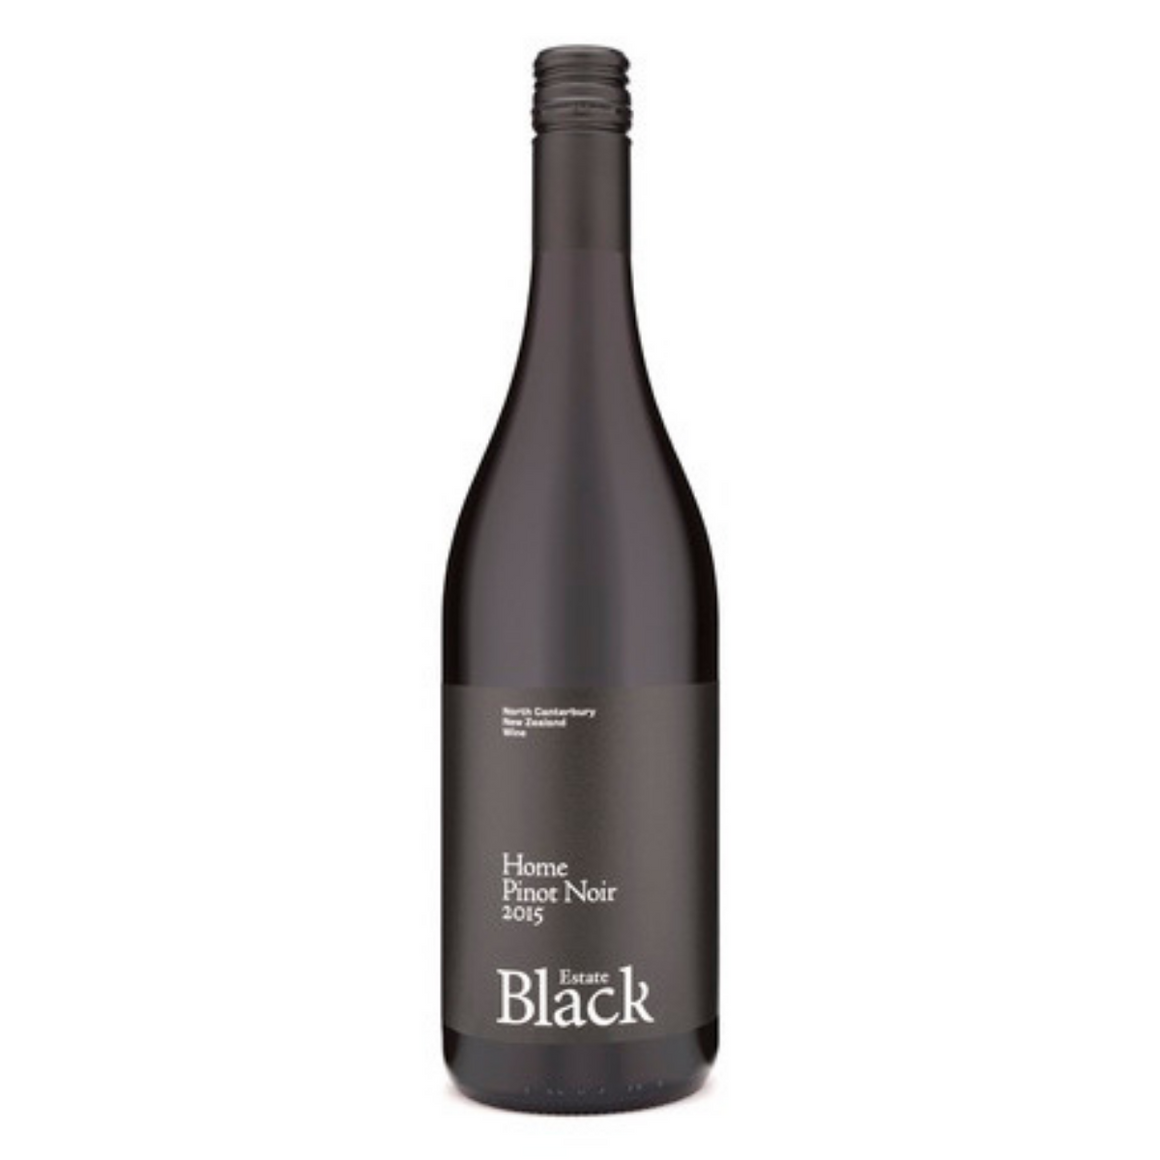 Black Estate Home Pinot Noir 2015